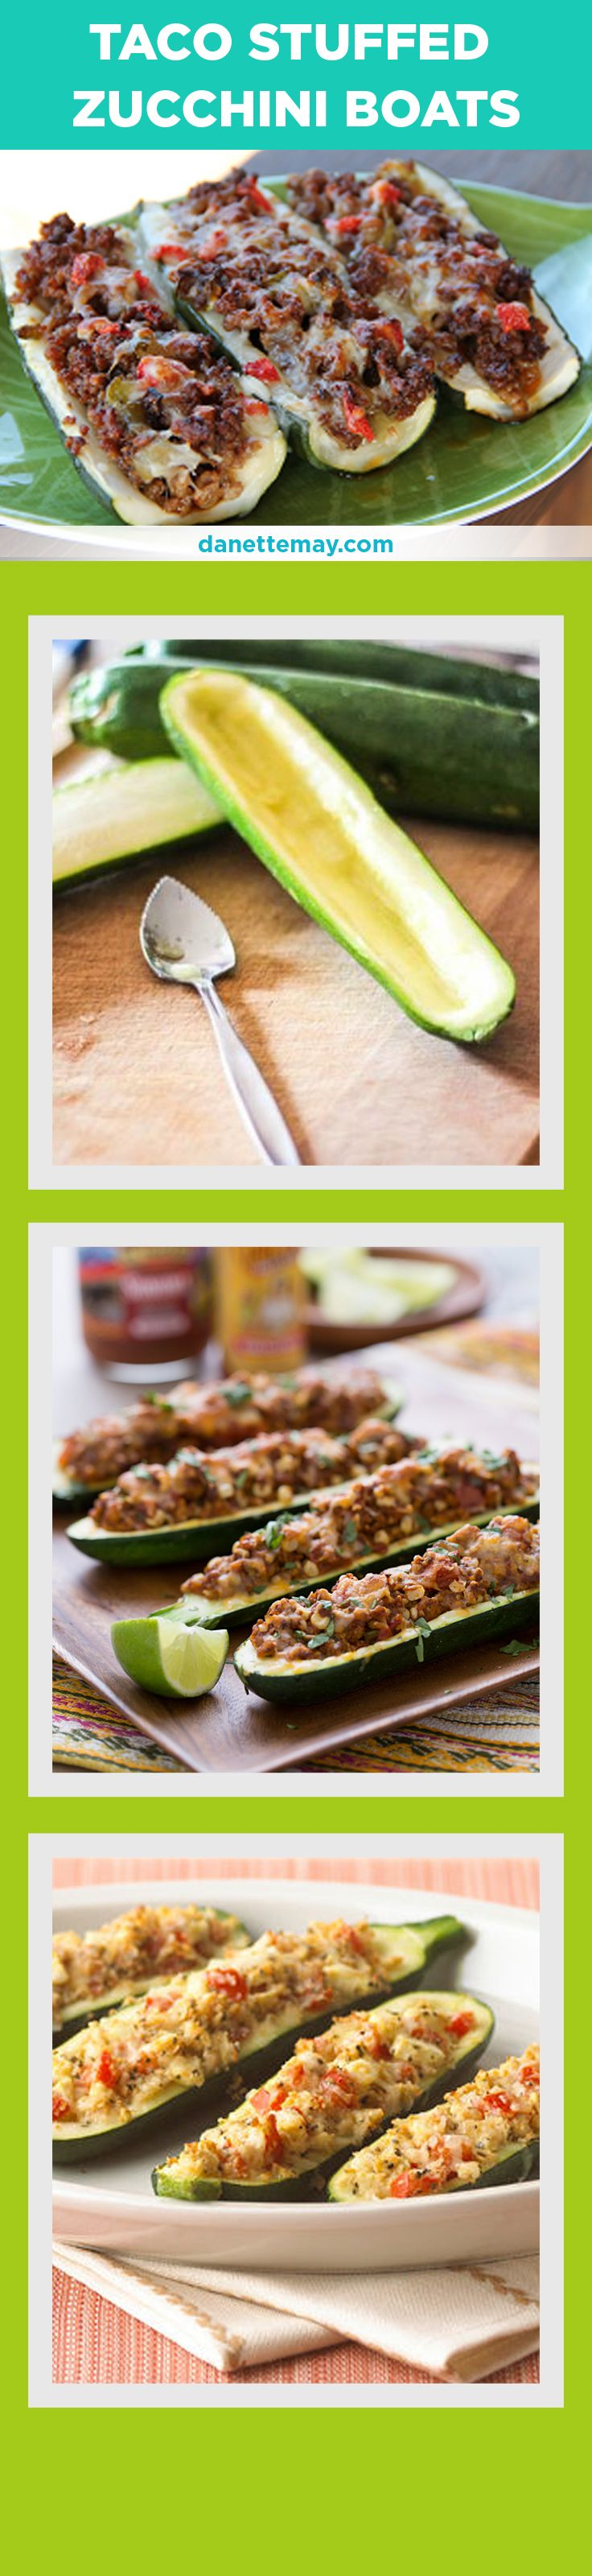 This easy recipe puts a healthy twist on Taco Tuesday and your whole family will love it! #CleanEats